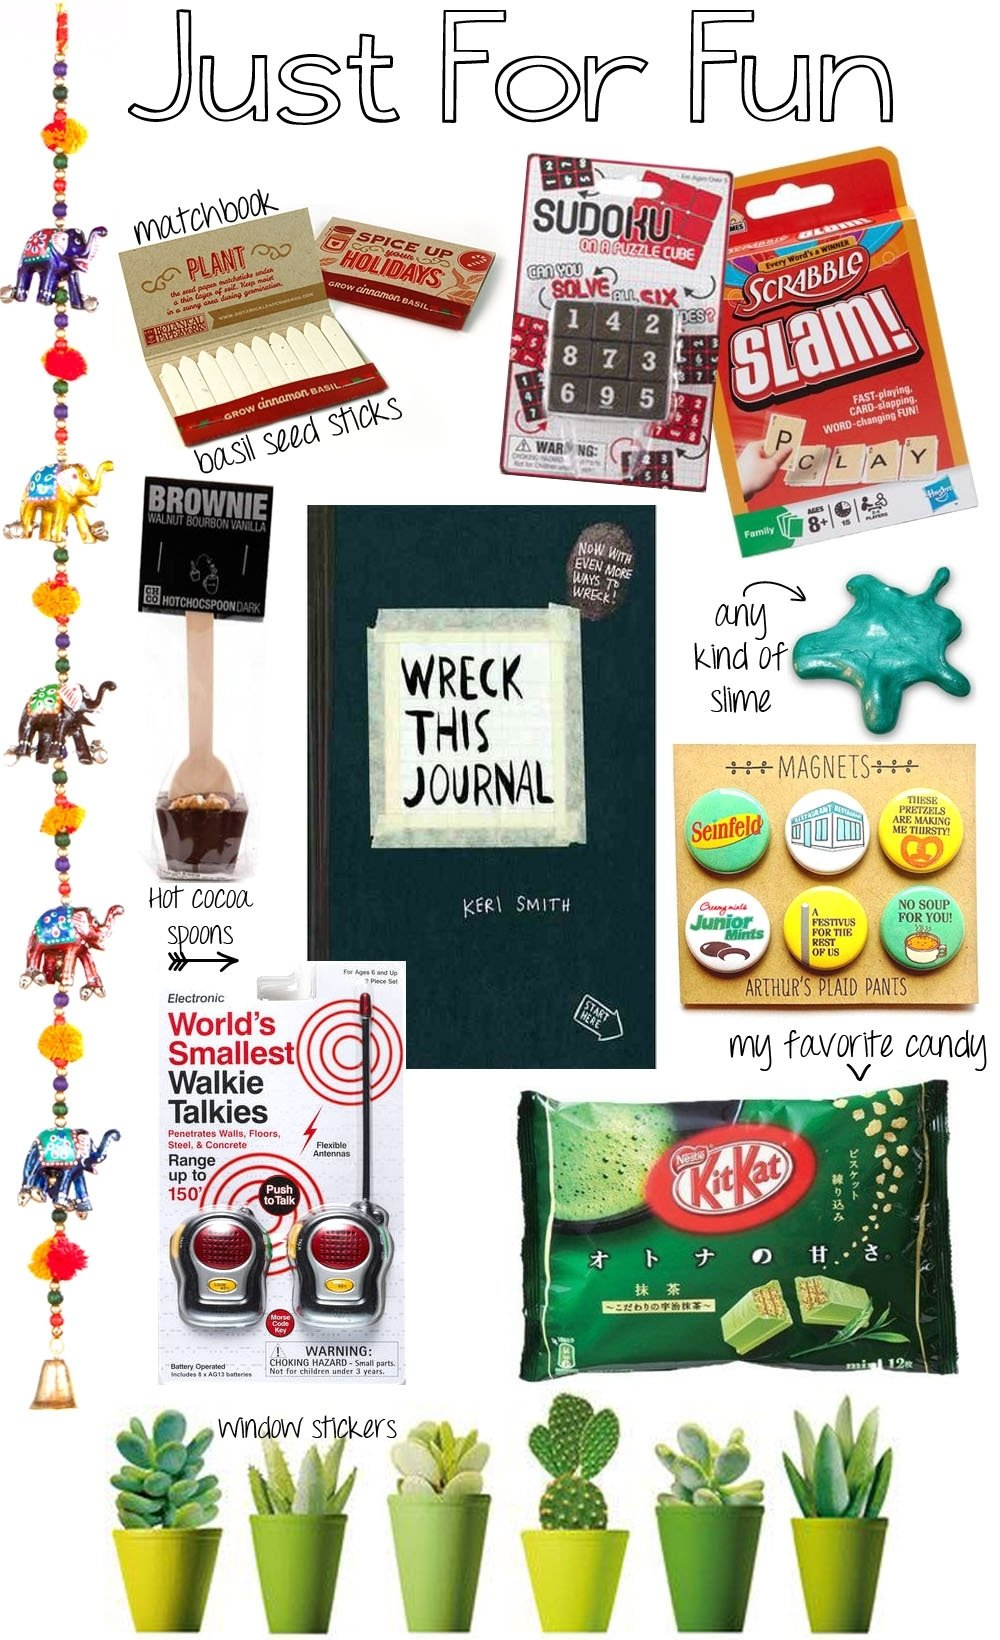 10 Lovable Stocking Stuffer Ideas For Her stocking stuffers for her making mondays 12 2020